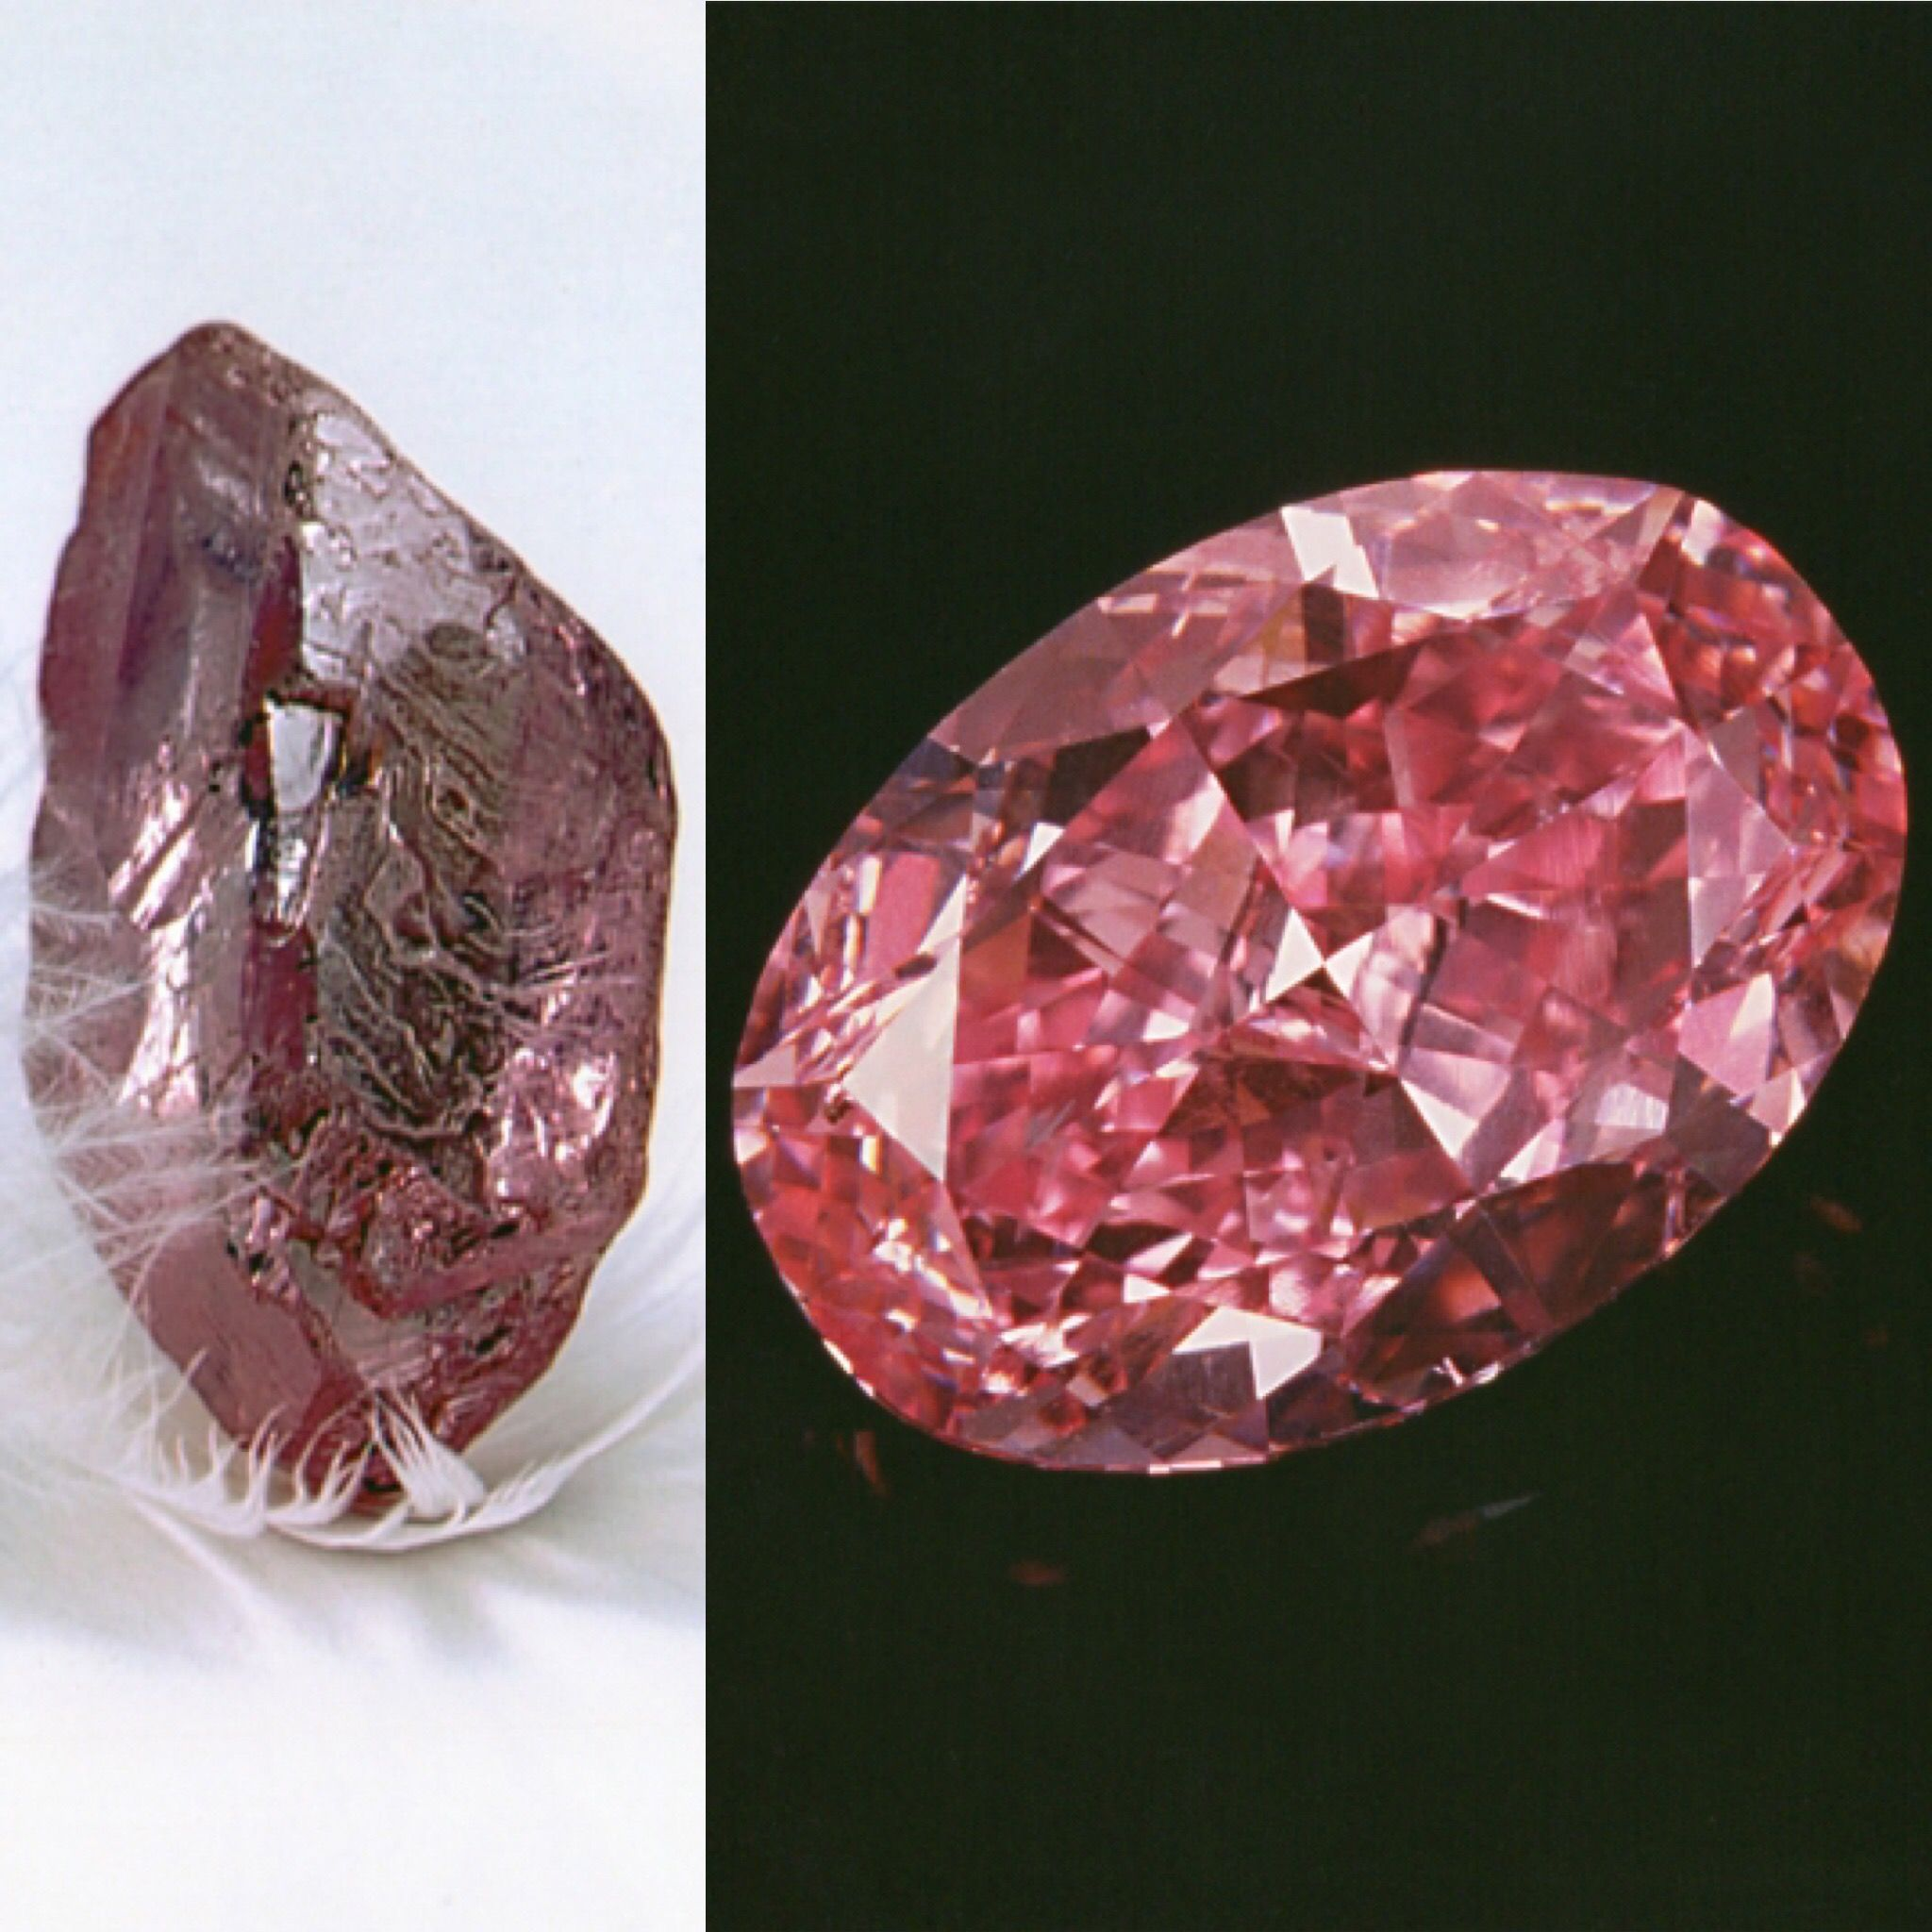 brilliance why of oppenheimer colored was diamond article style juliet cnn index rare year the diamonds pink